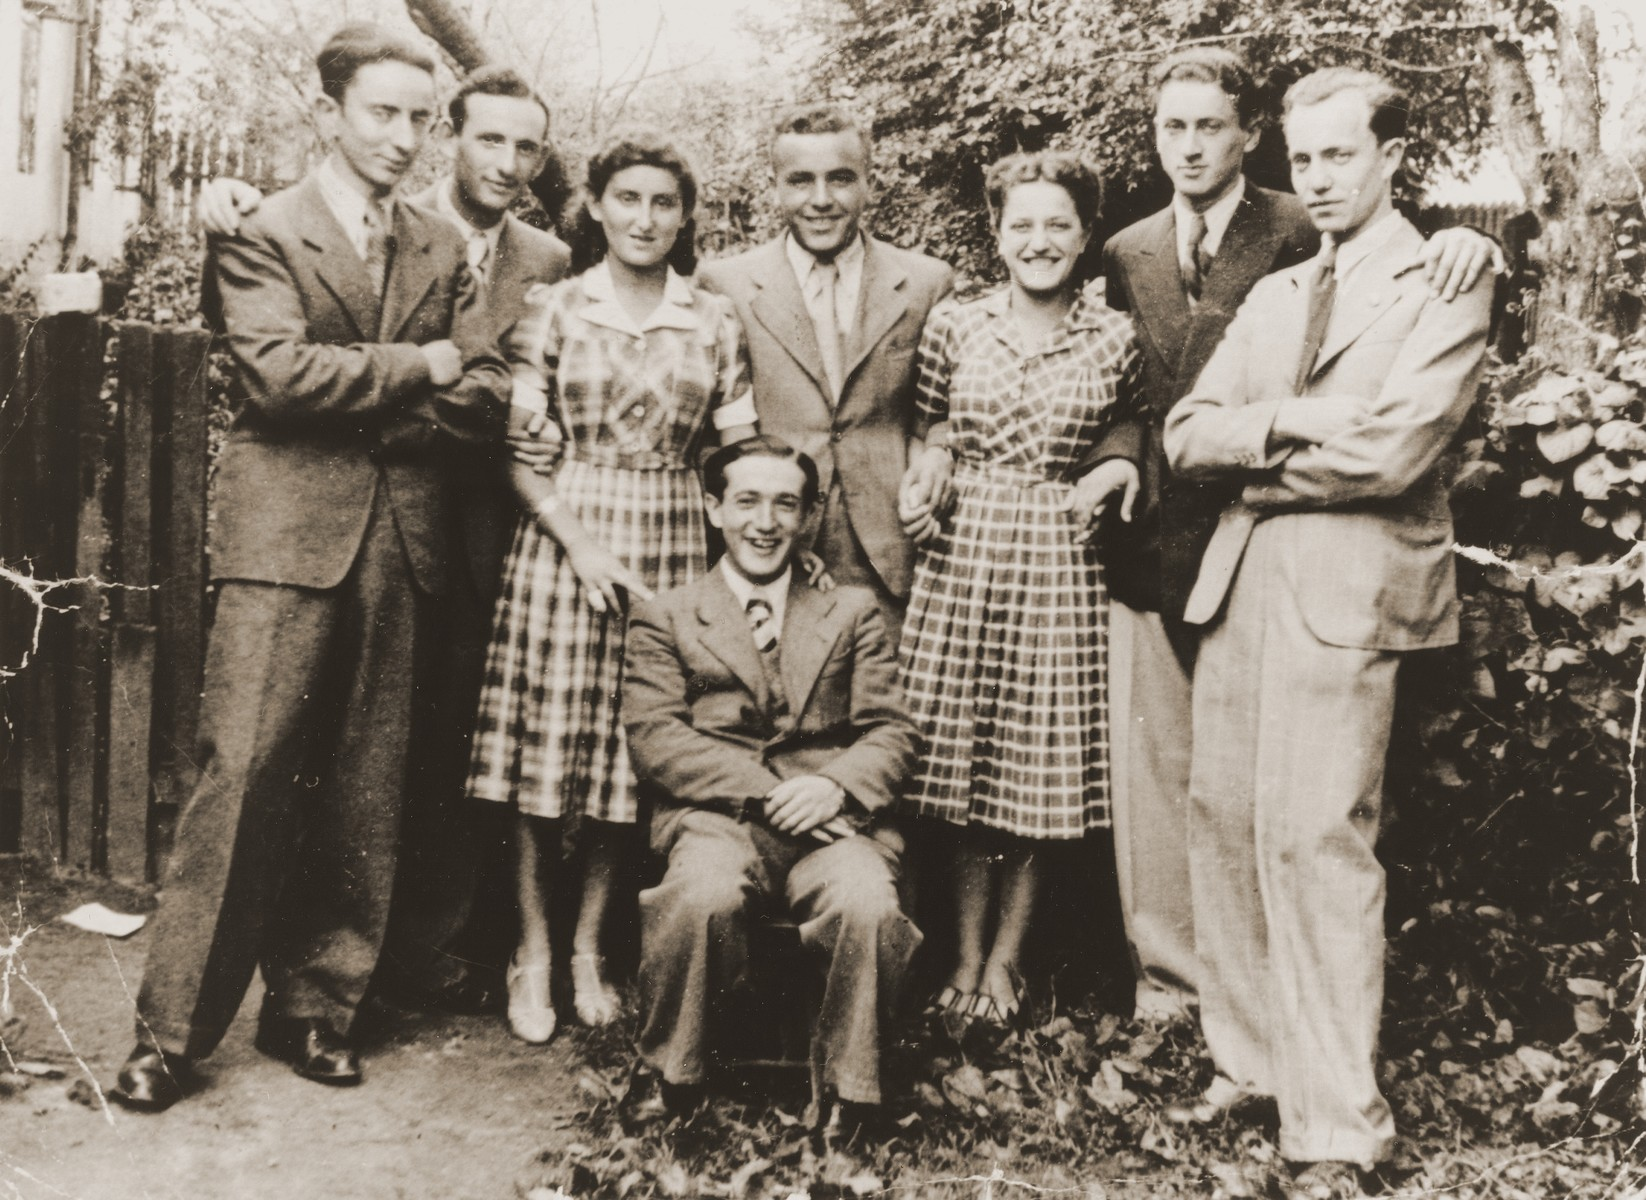 Group portrait of Jewish high school friends in Brody, Poland.  Pictured standing from left to right are: unknown, Henryk Lanceter, Ms. Buchbinder, Jacob Tomaszower, unknown, Mr. Korn, and Nathan Shapira. Seated is David Sirota.